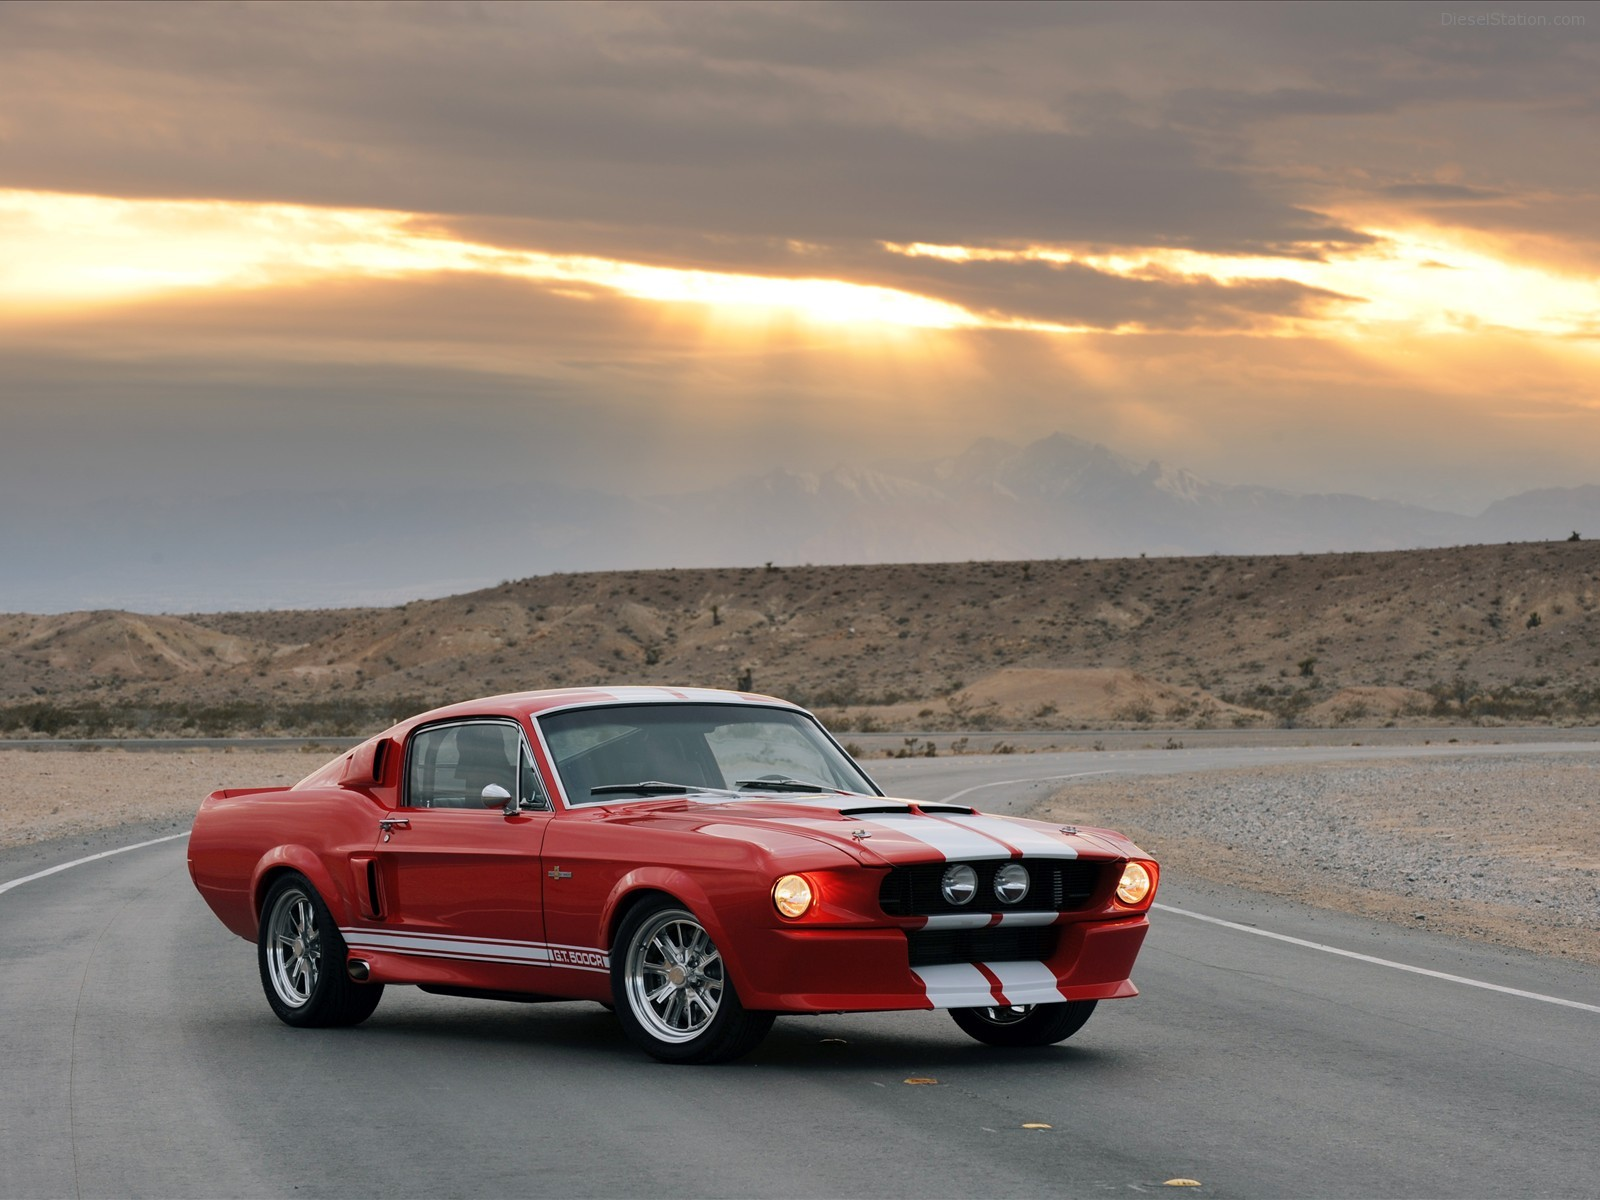 Mustang Fastback Shelby GT500CR 1967 Exotic Car Wallpaper 09 of 42 1600x1200